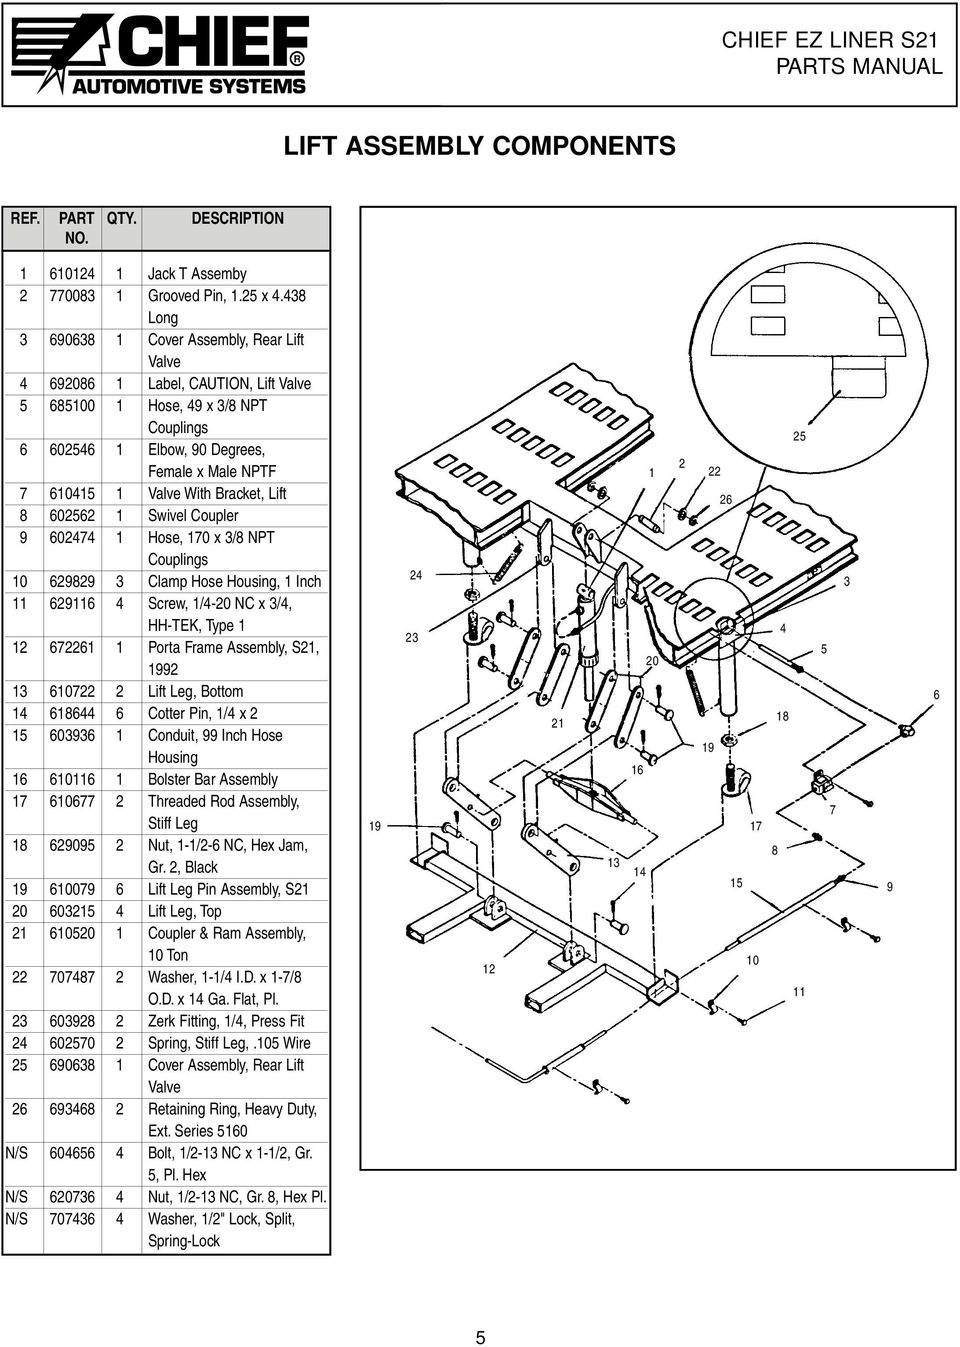 Chief Ez Liner S21 Parts Manual Automotive Systems Inc Pdf Vbm Challenger Lifts Wiring Diagrams 602562 1 Swivel Coupler 9 602474 Hose 170 X 3 Npt 10 62929